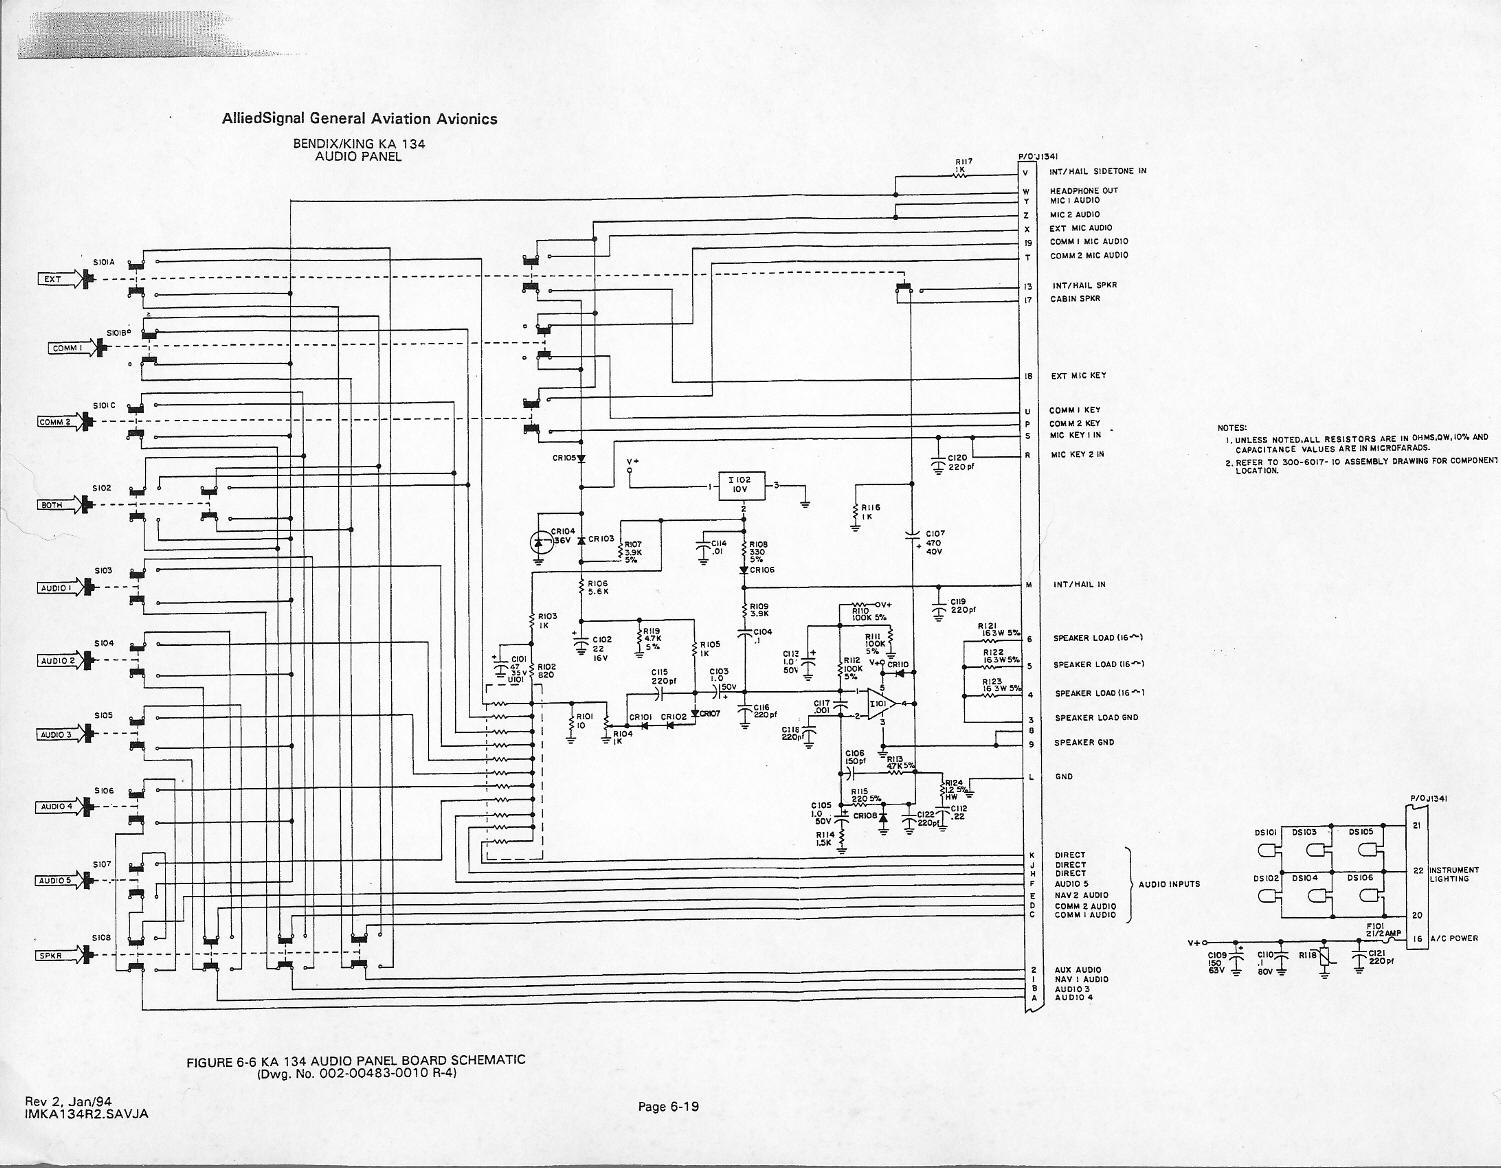 ka134_r4 first flight prep king ka 134 audio panel wiring diagram at honlapkeszites.co